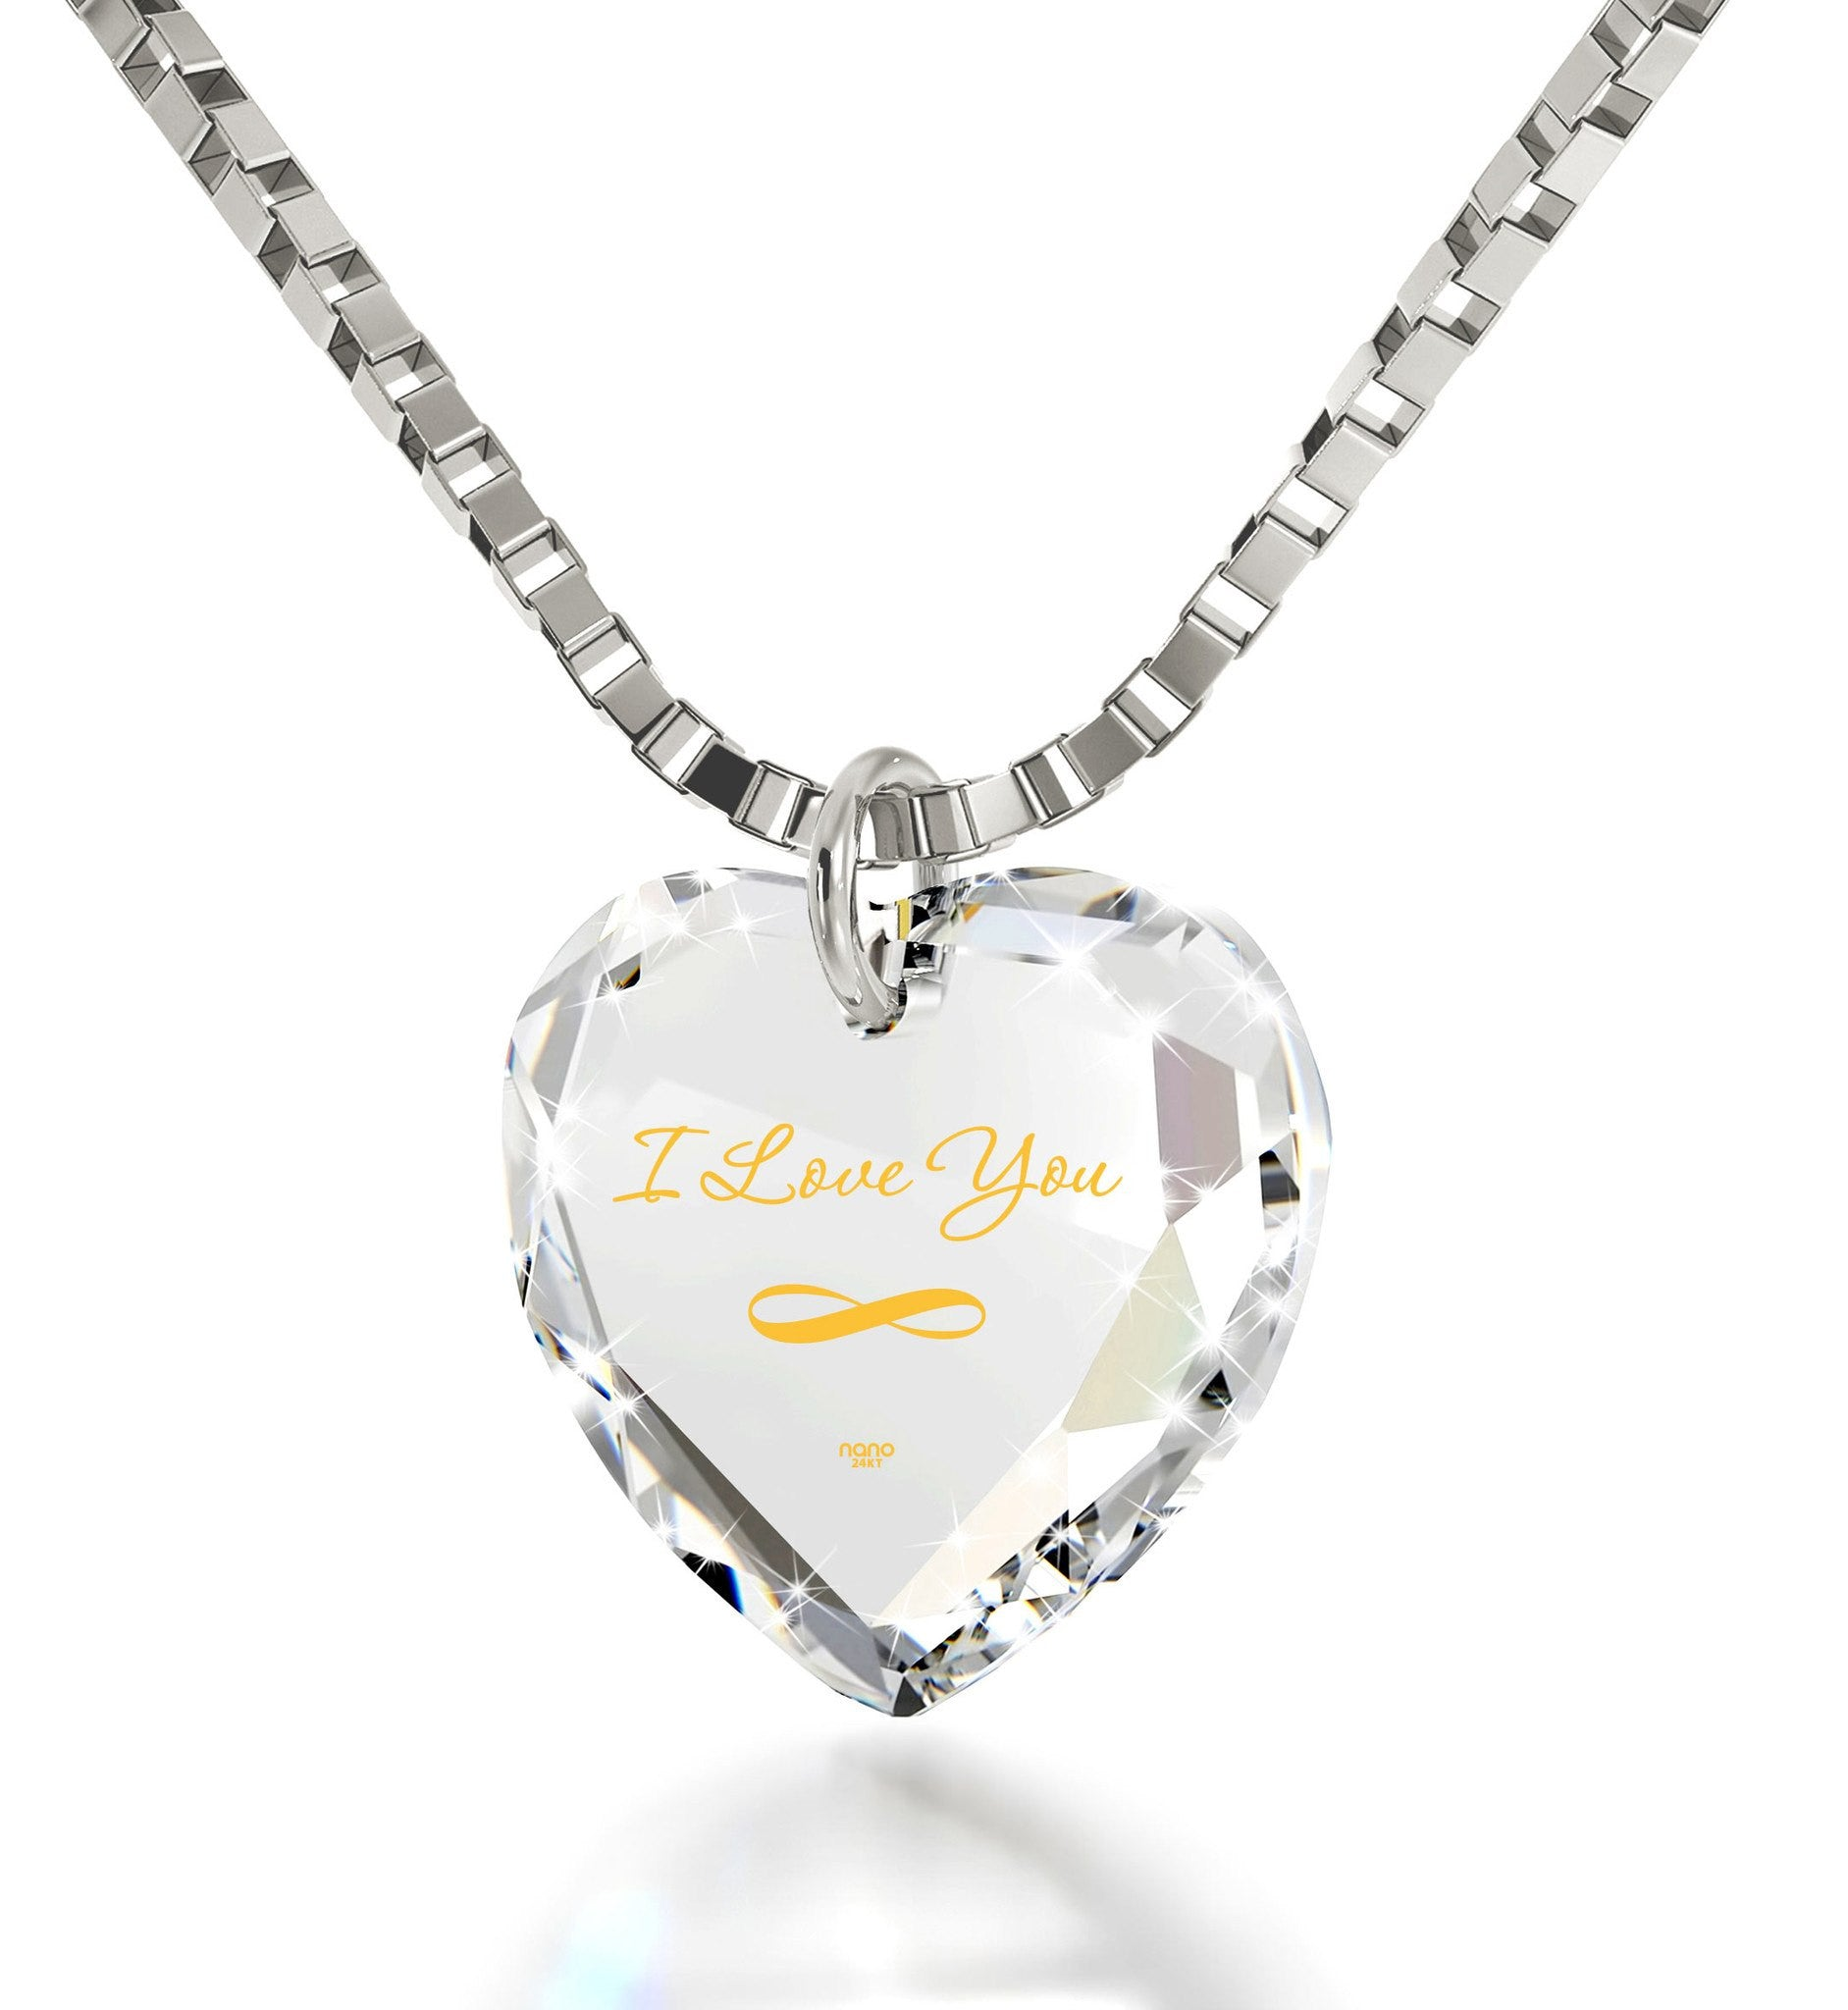 """I Love You Infinity"" Imprint, Top Gift Ideas for Women, Cool Xmas Presents,Swarovksi Crystal Jewelry"